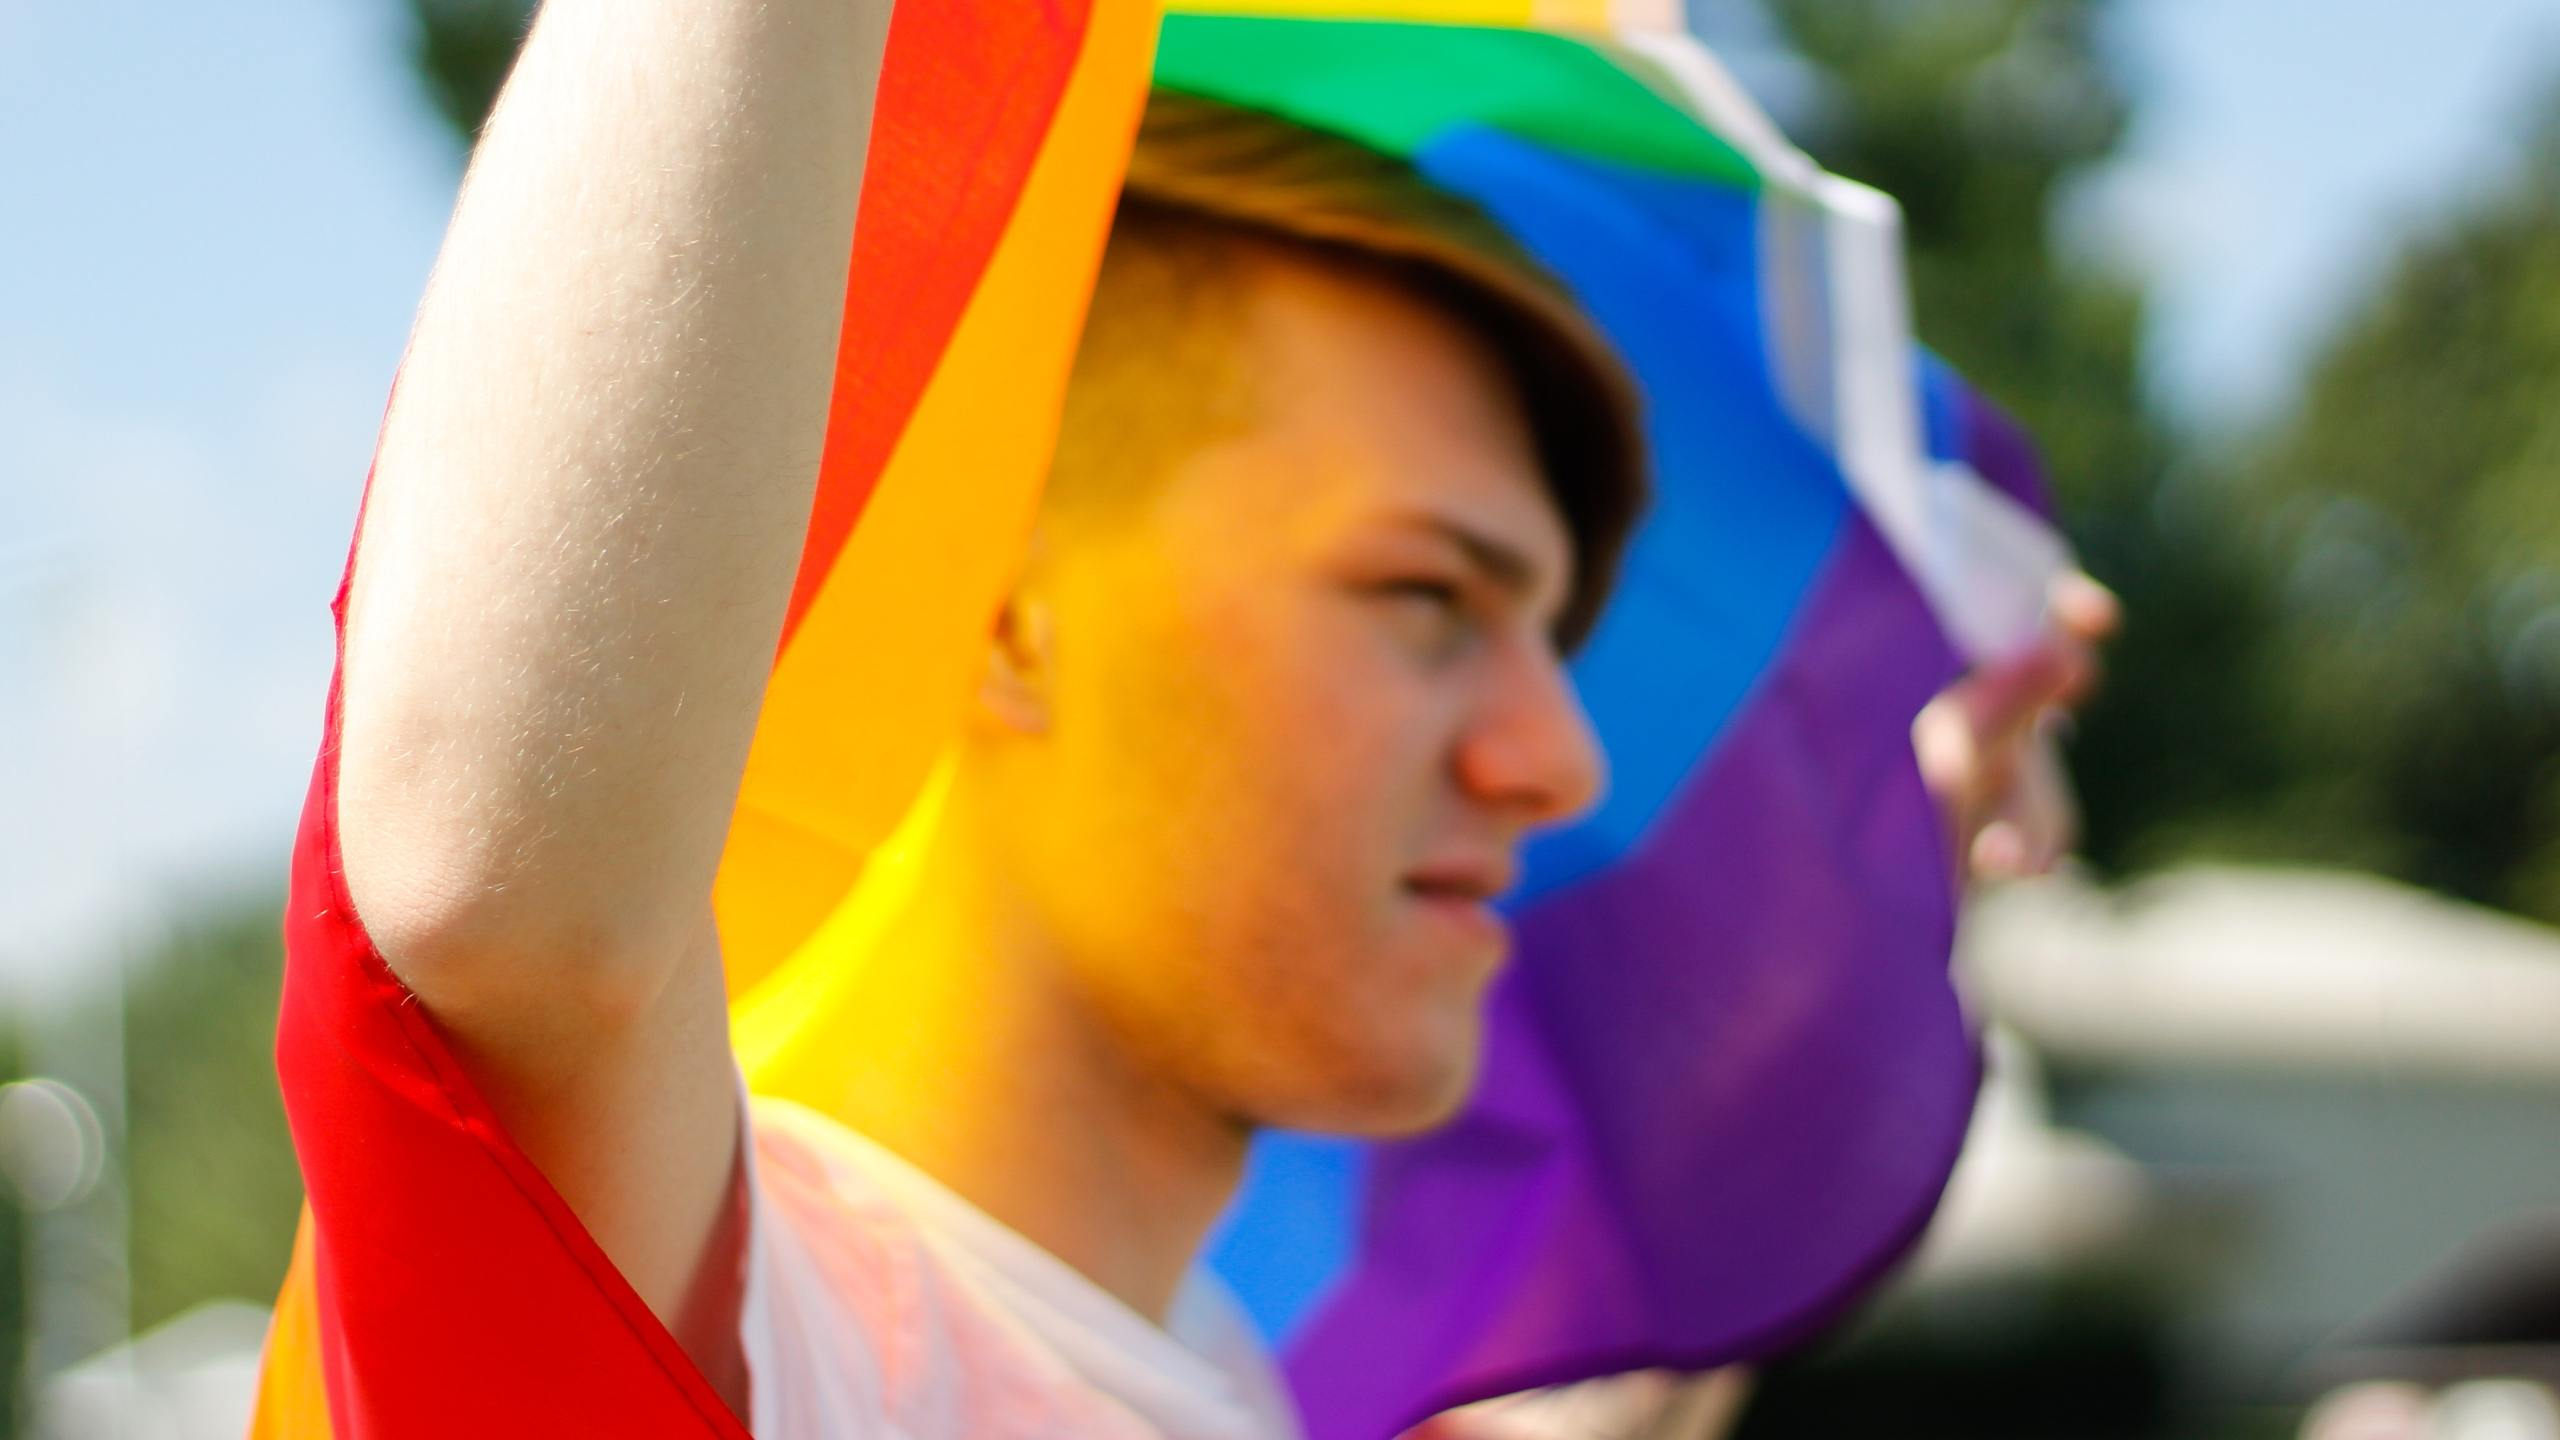 Man holding pride flag (Photo by Brianna Swank from Pexels)